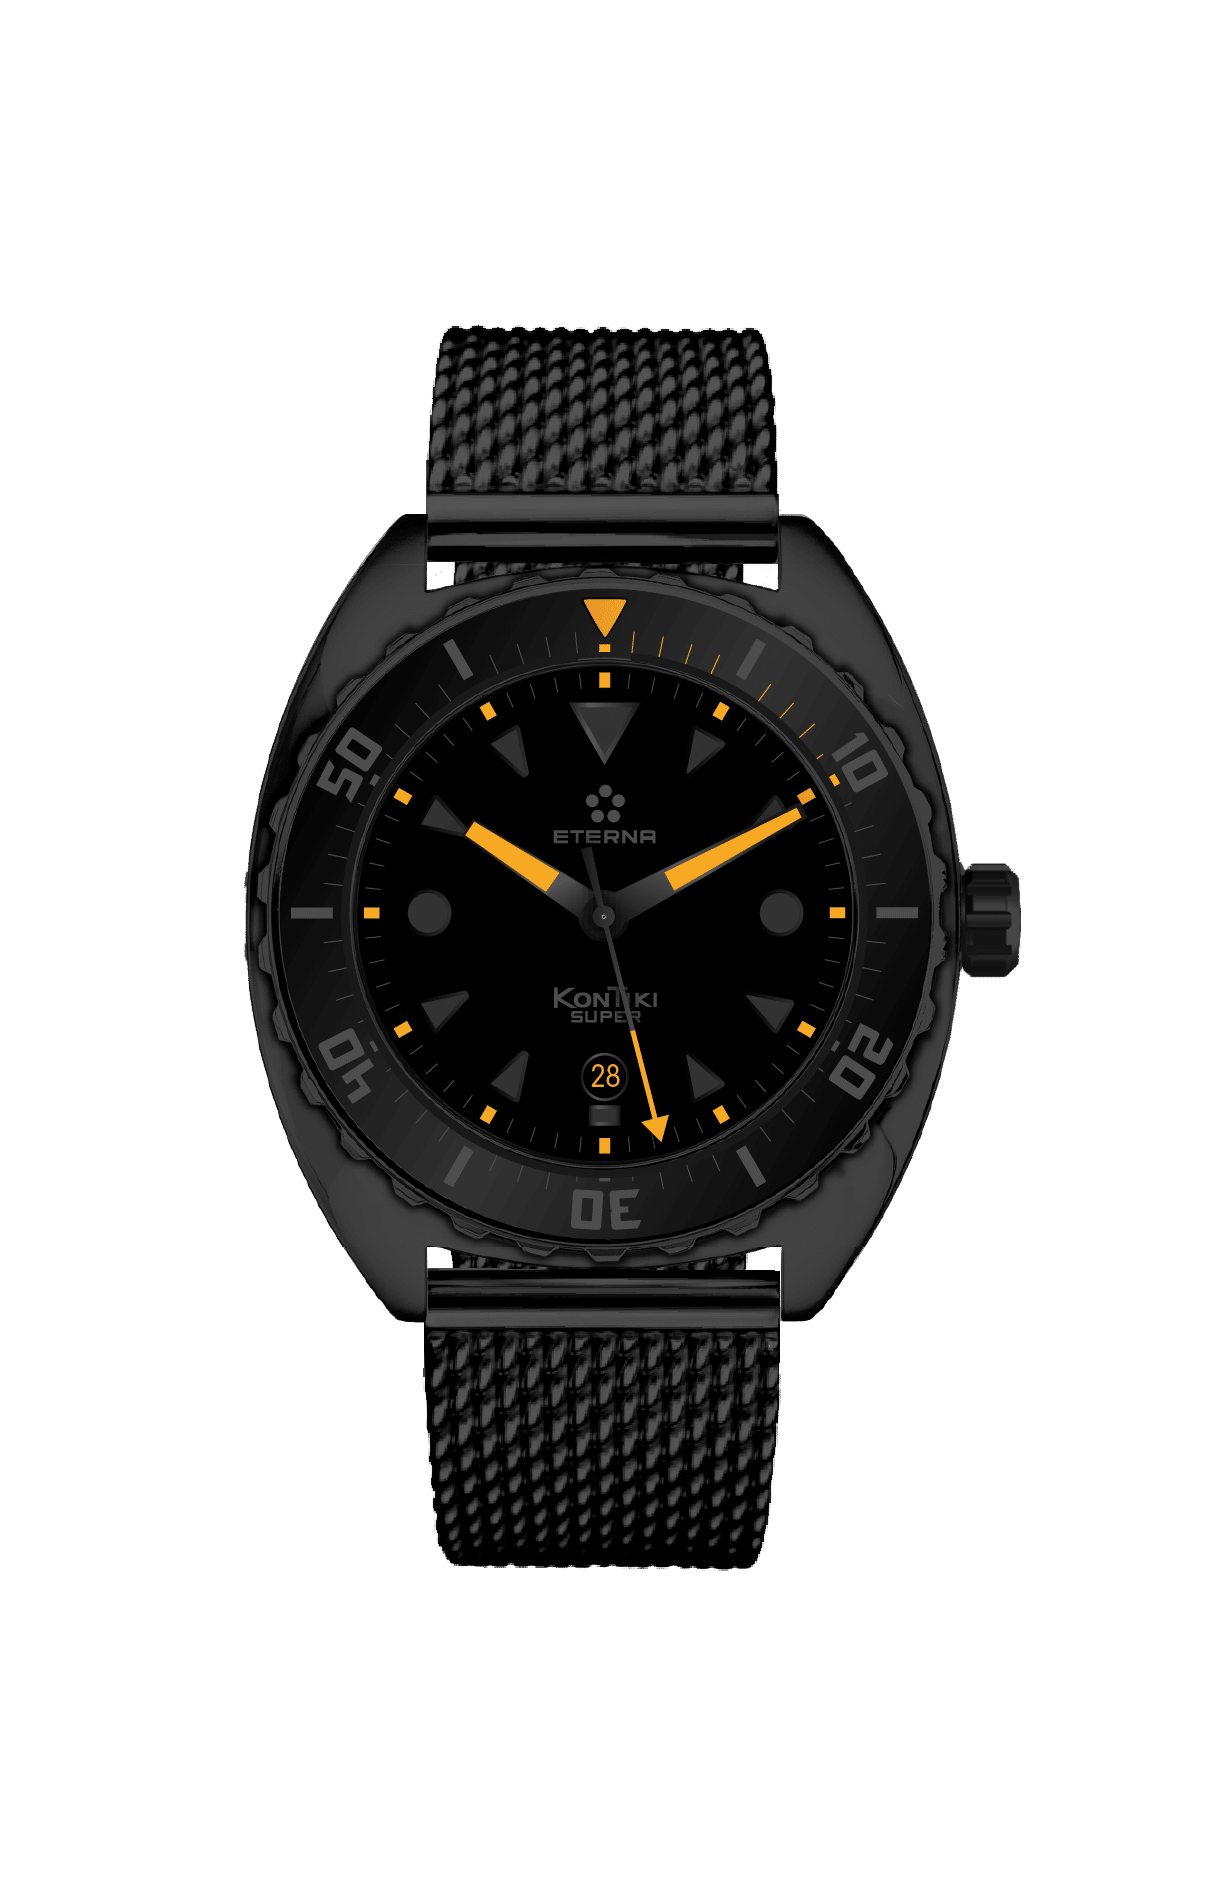 Eterna: Super KonTiki Black Limited Edition, Referenz 1273.43.41.1365